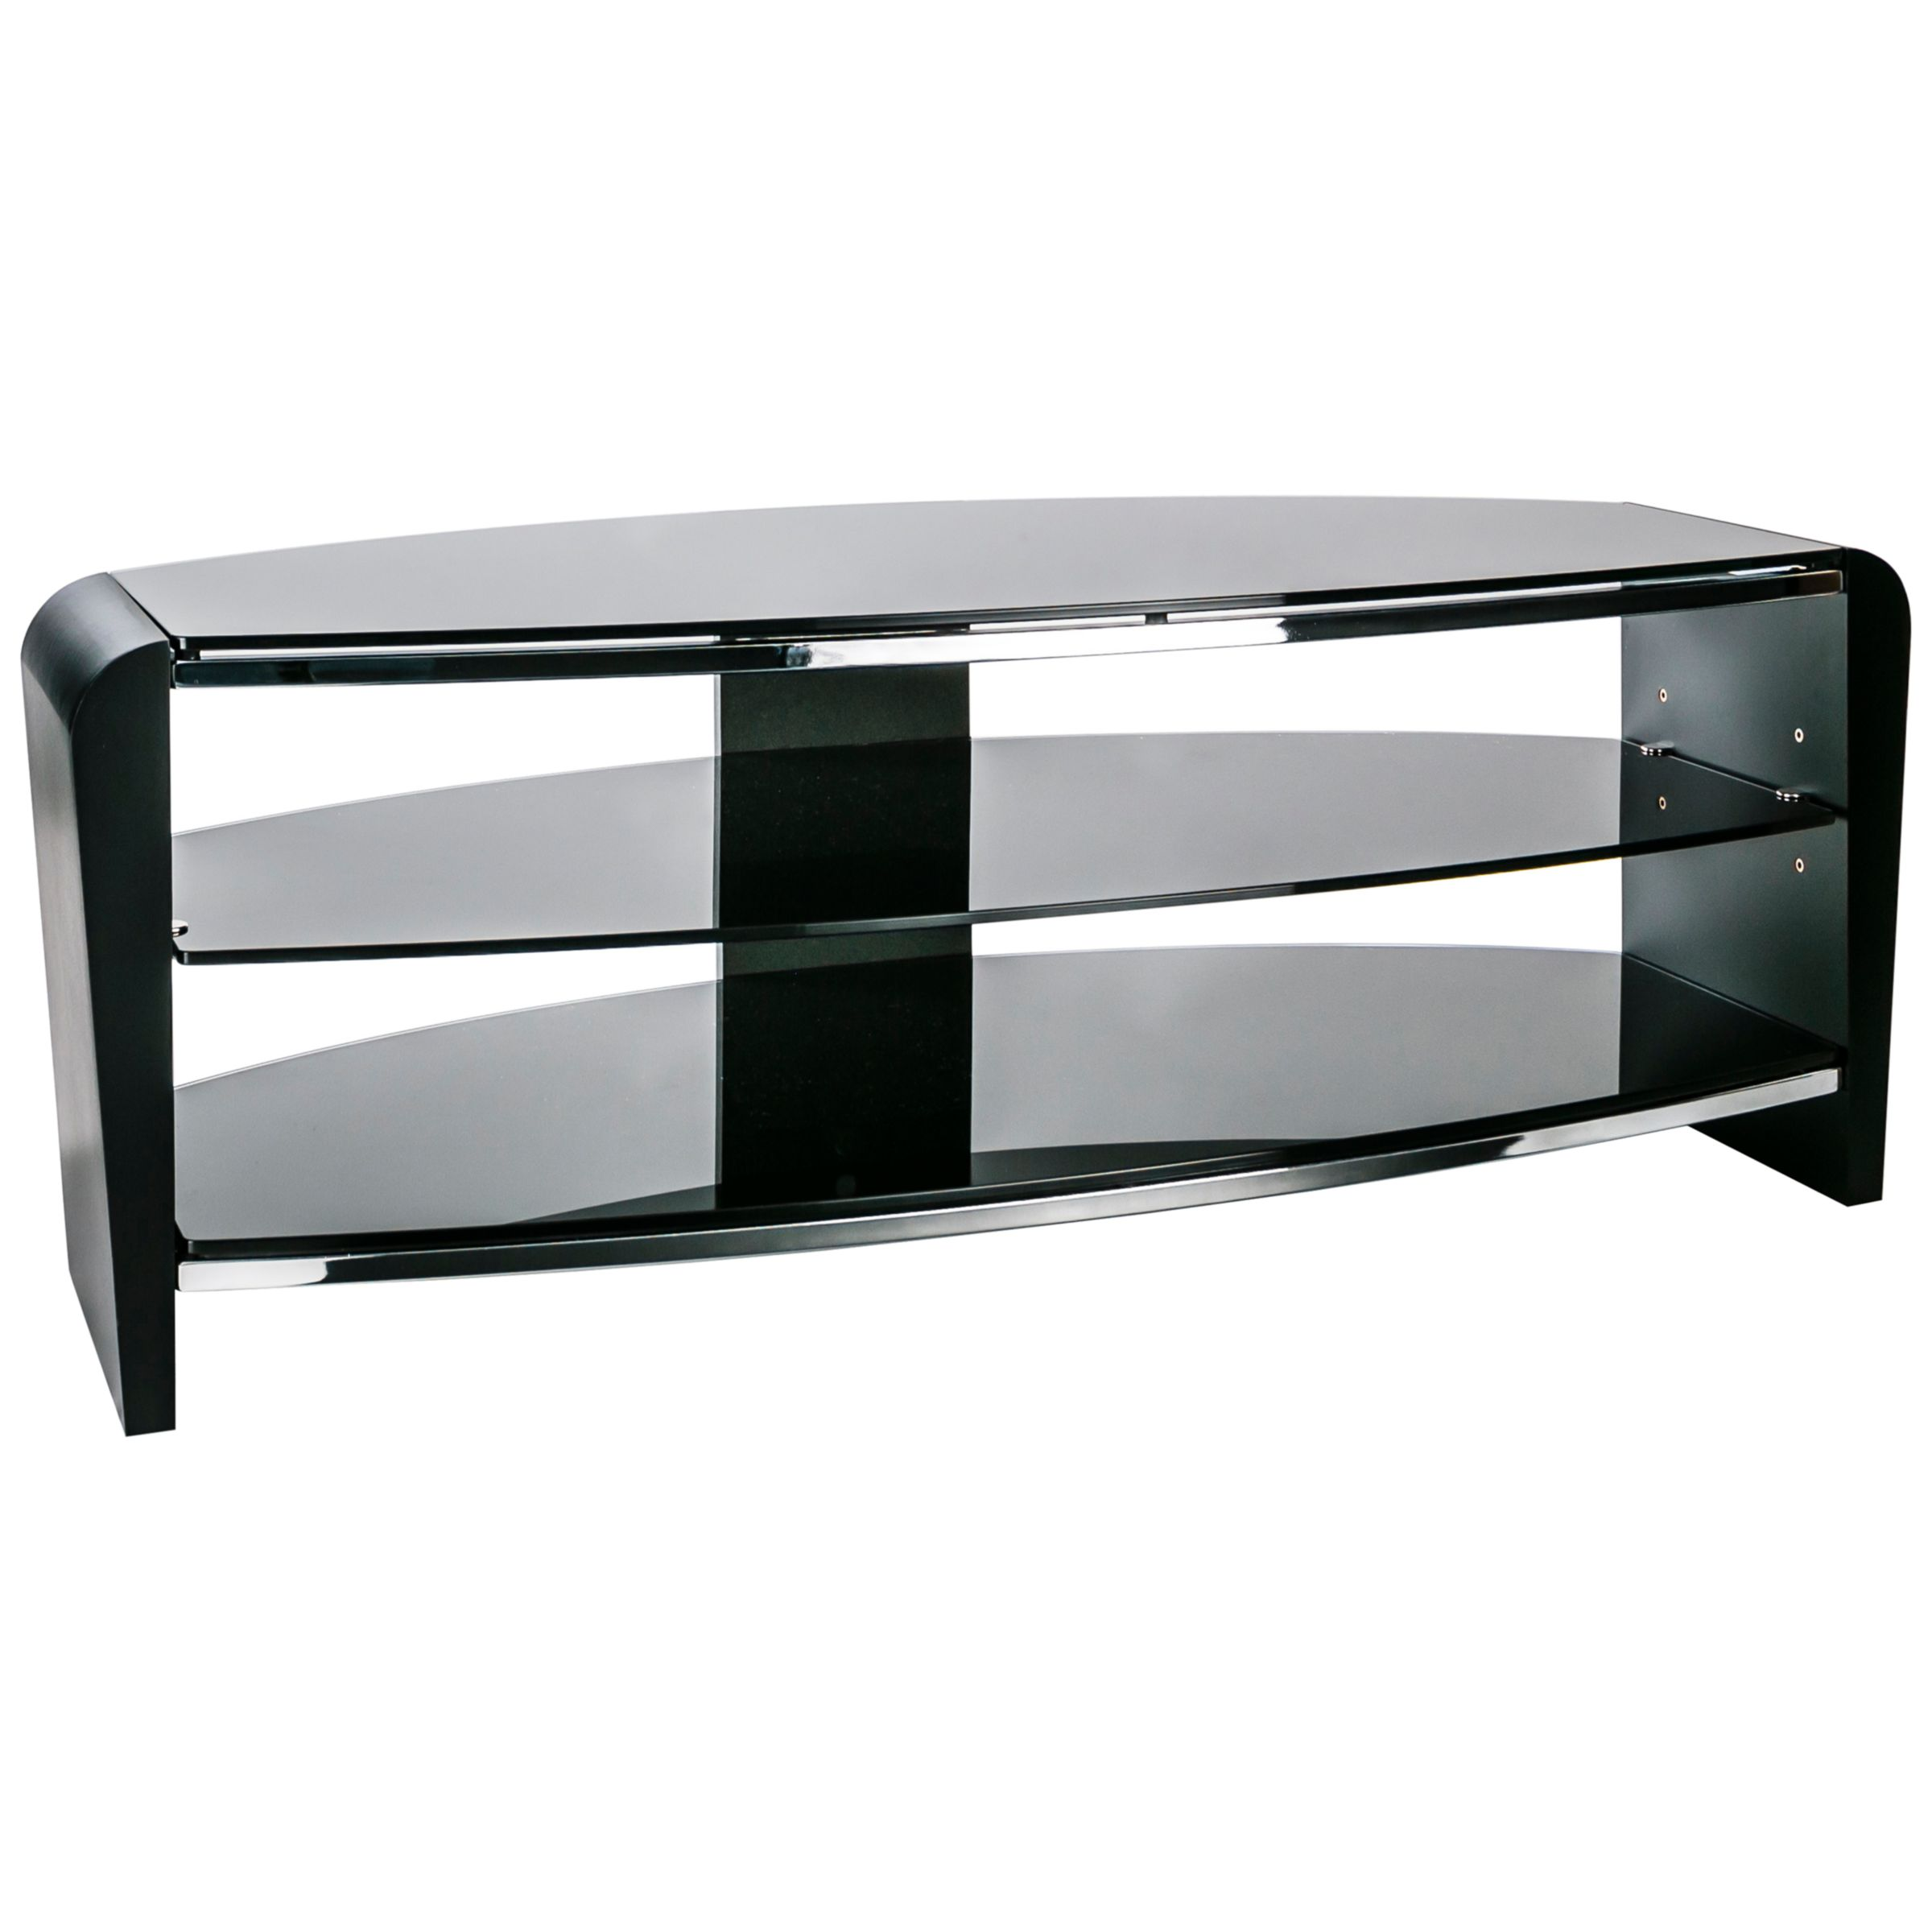 Alphason Alphason Francium 110 TV Stand for TVs up to 50